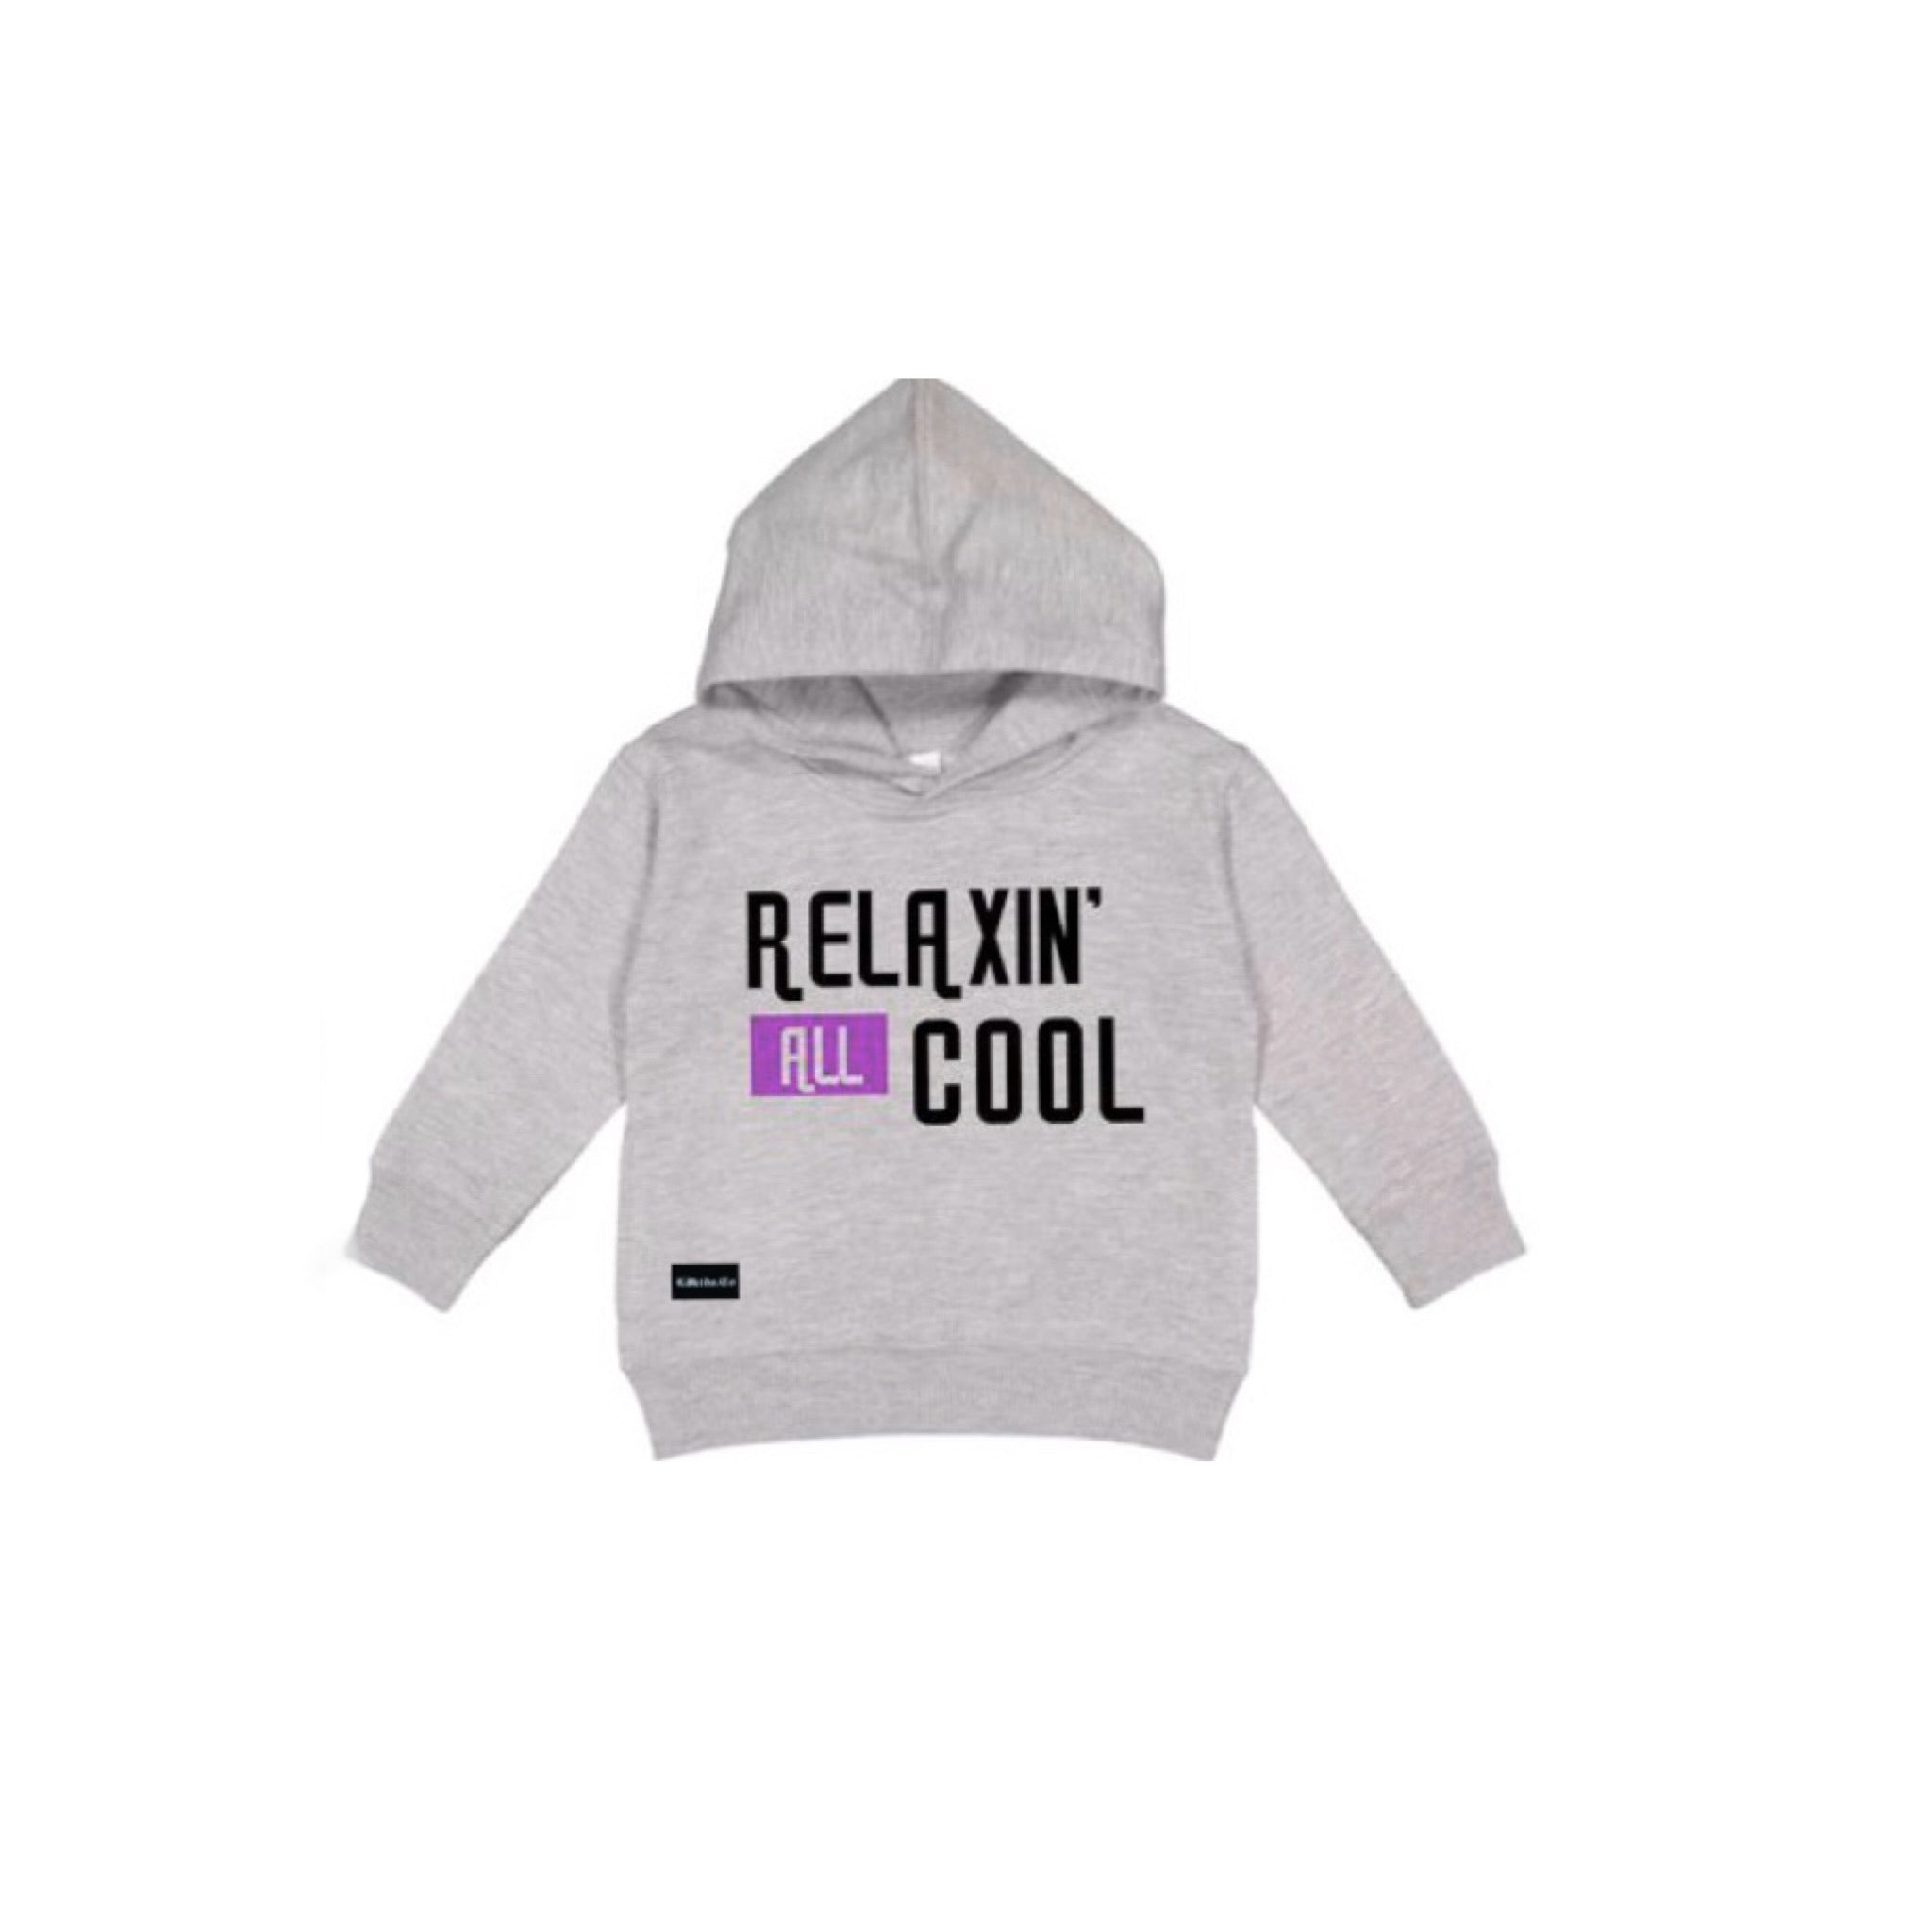 Relaxin' All Cool Hoodie